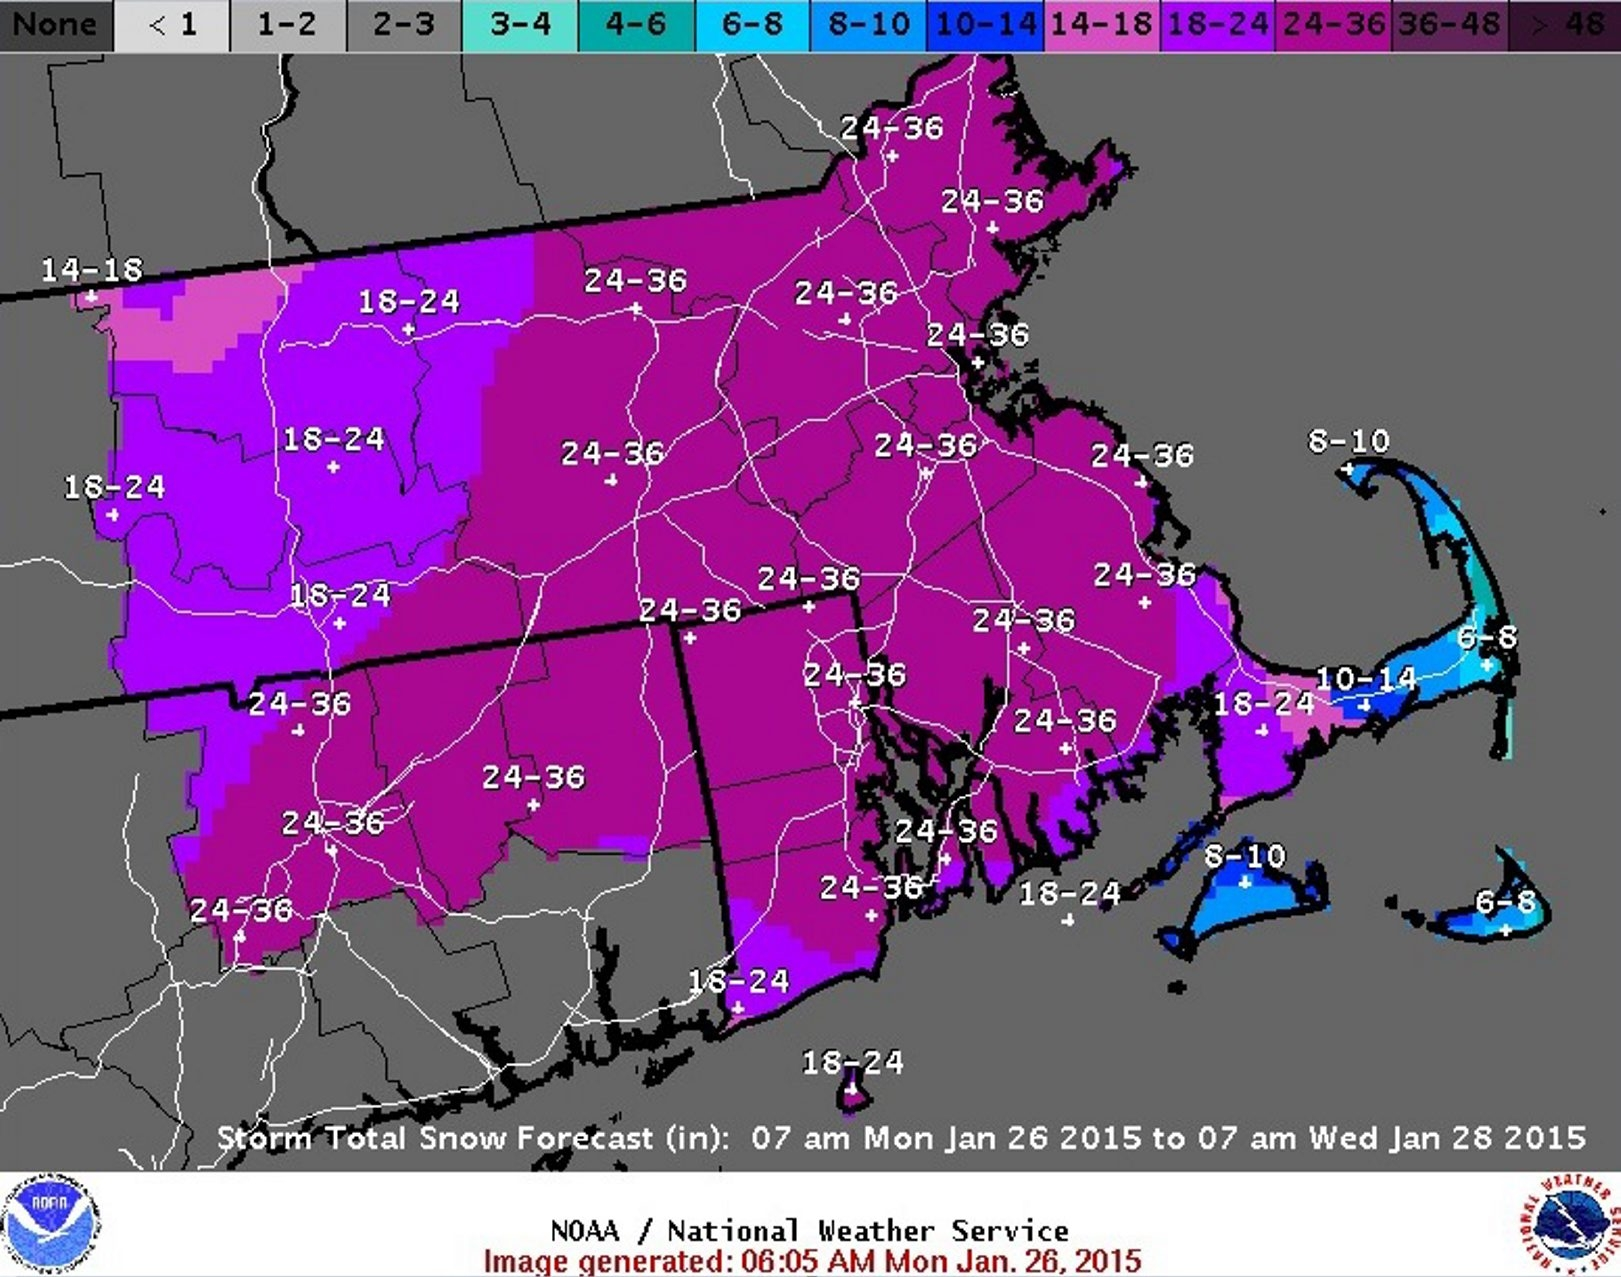 National Weather Service map from Jan. 26 shows projected snowfall totals through Wednesday for the Boston, Mass., area.